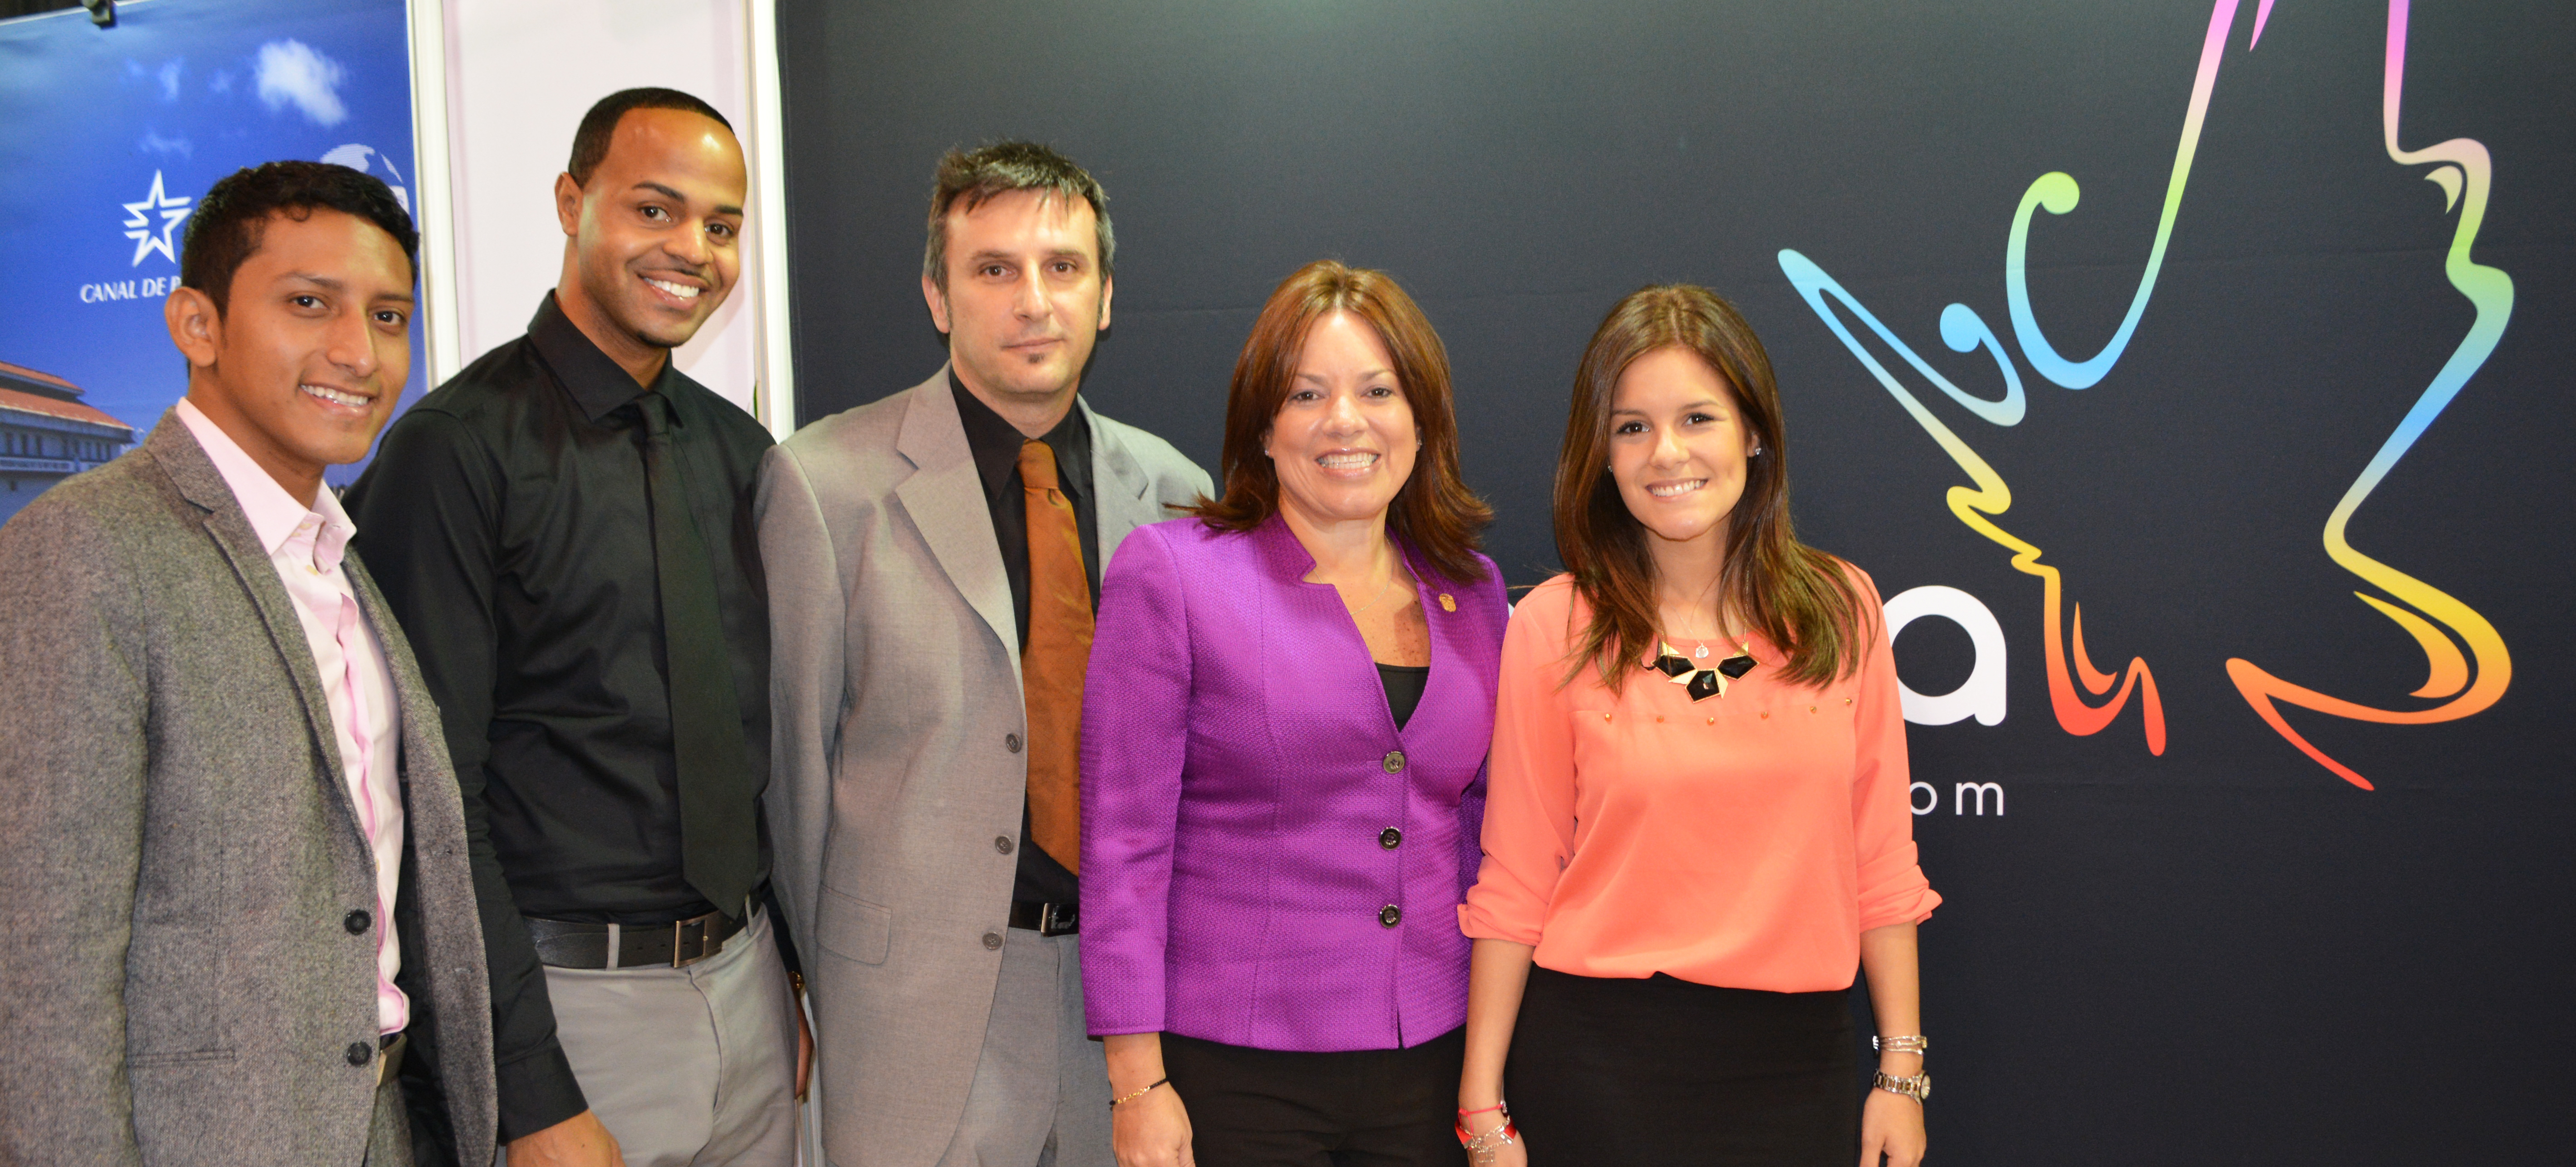 Panama's Deputy Minister of Tourism visits IncentiveWorks